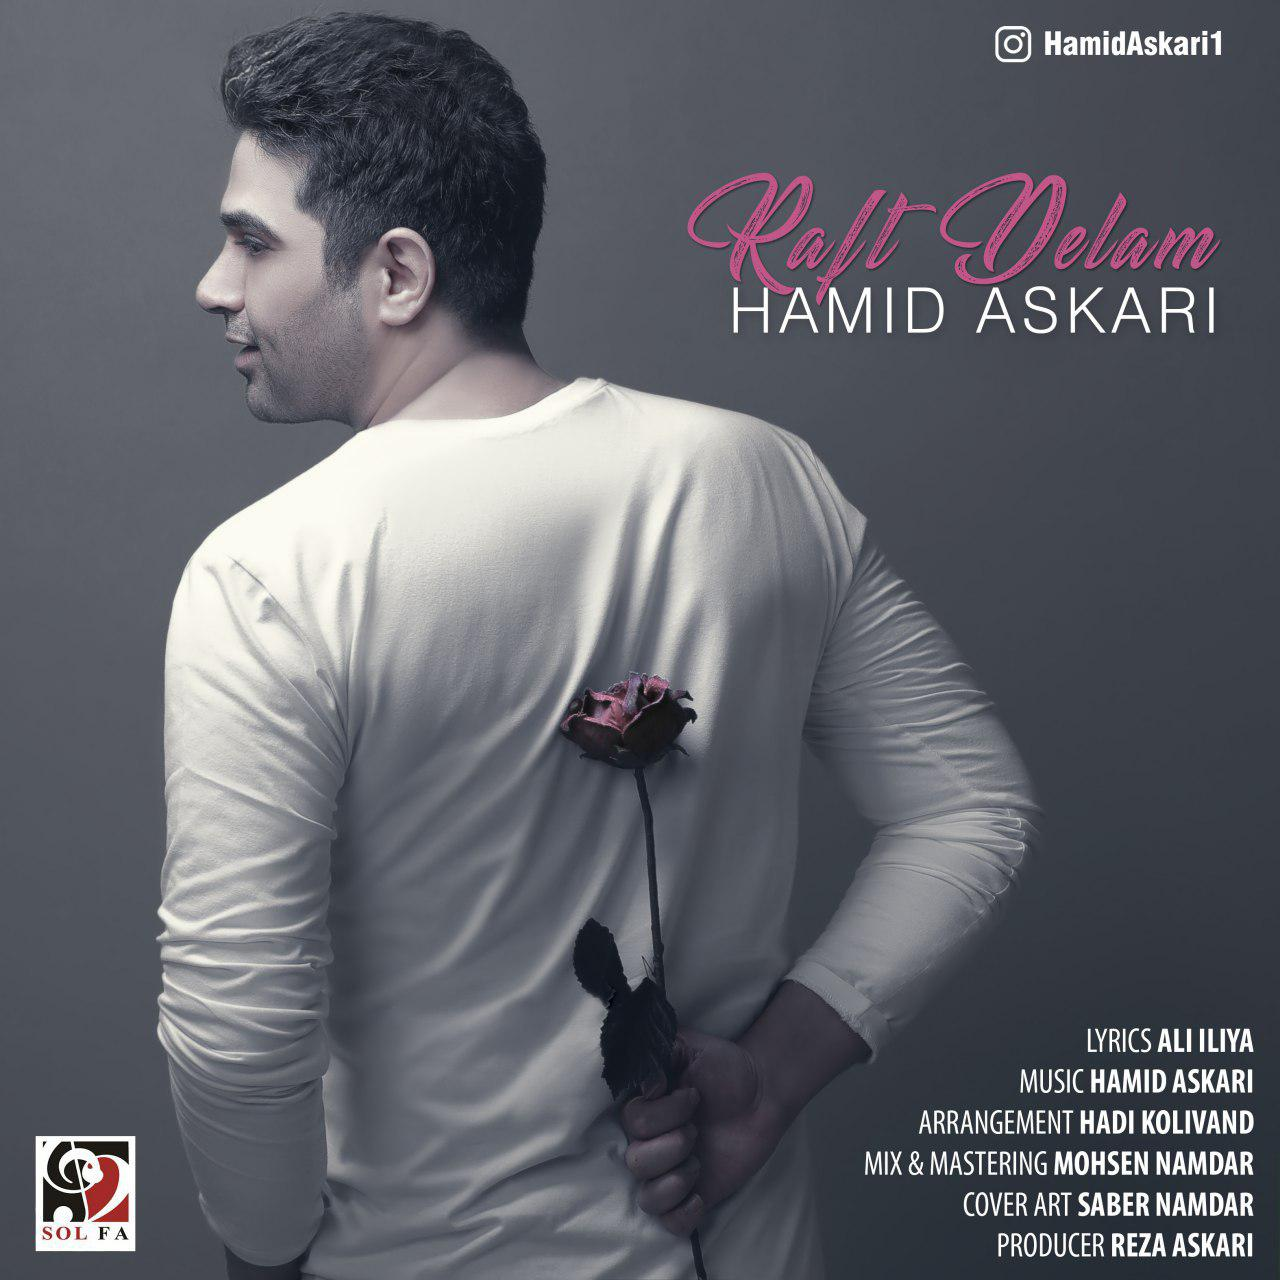 https://www.ganja2music.com/Image/Post/8.2019/Hamid%20Askari%20-%20Raft%20Delam.jpg